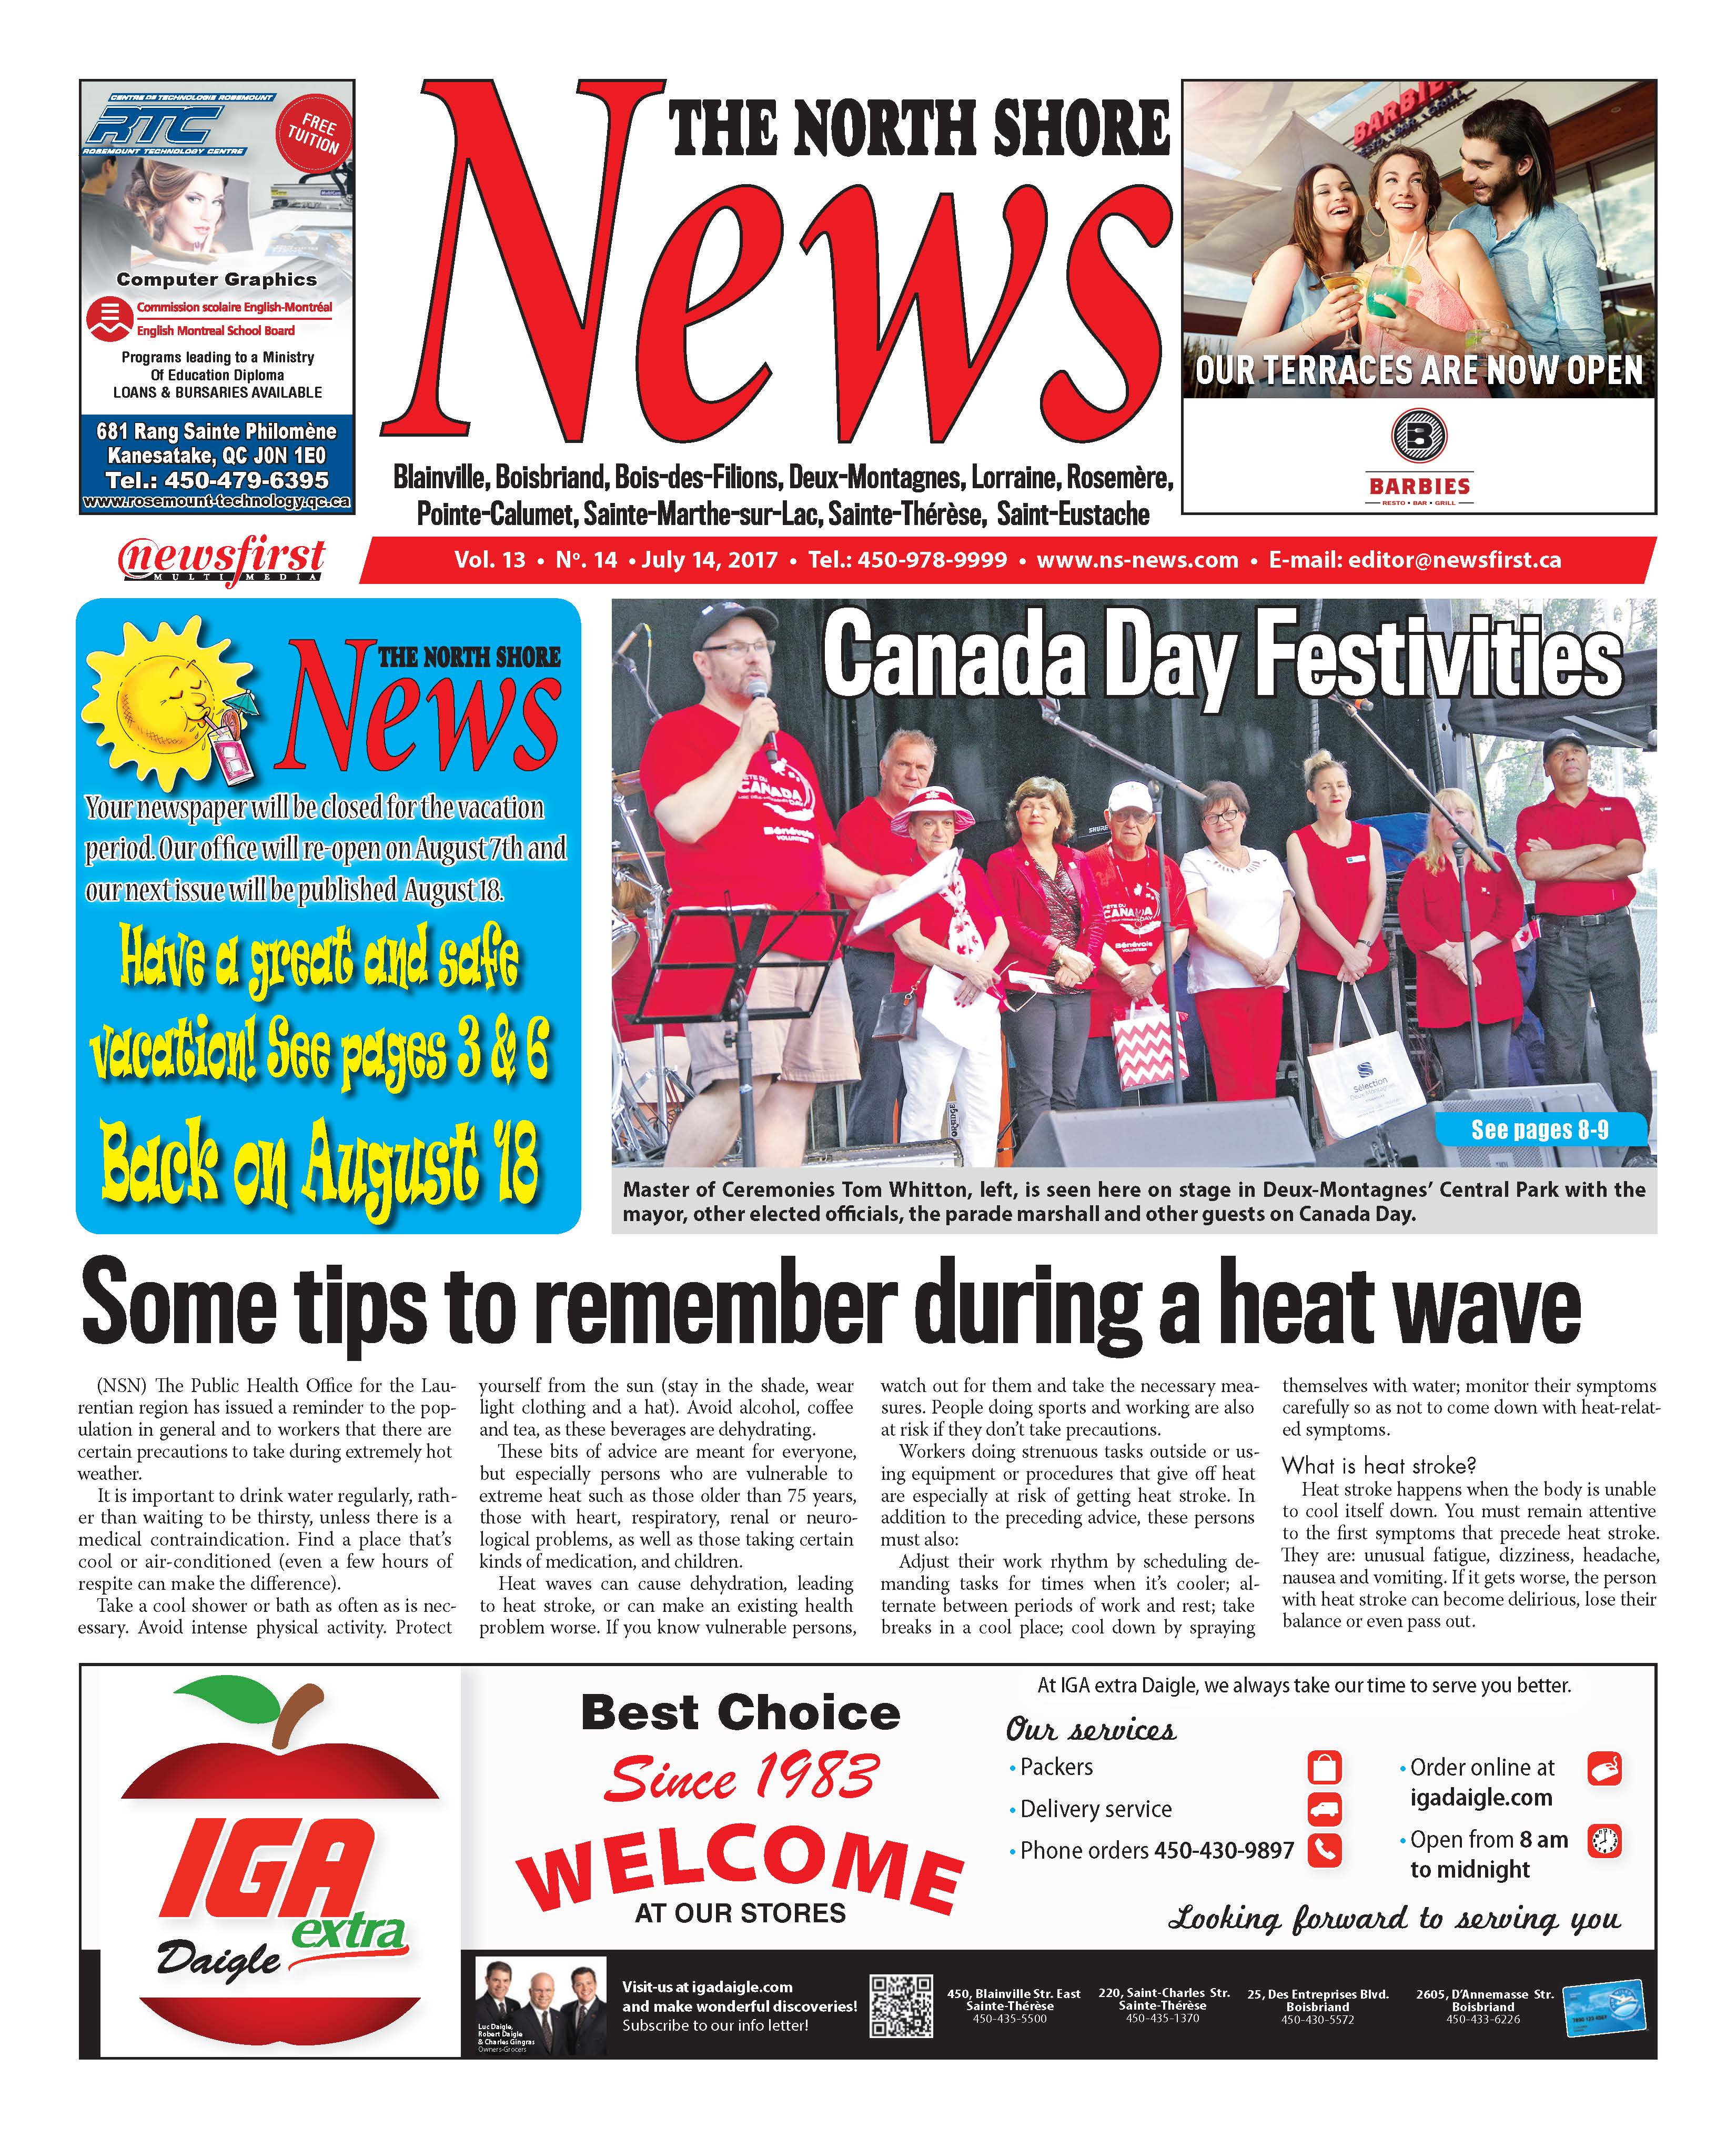 Front page image of the North Shore News Volume 13-14